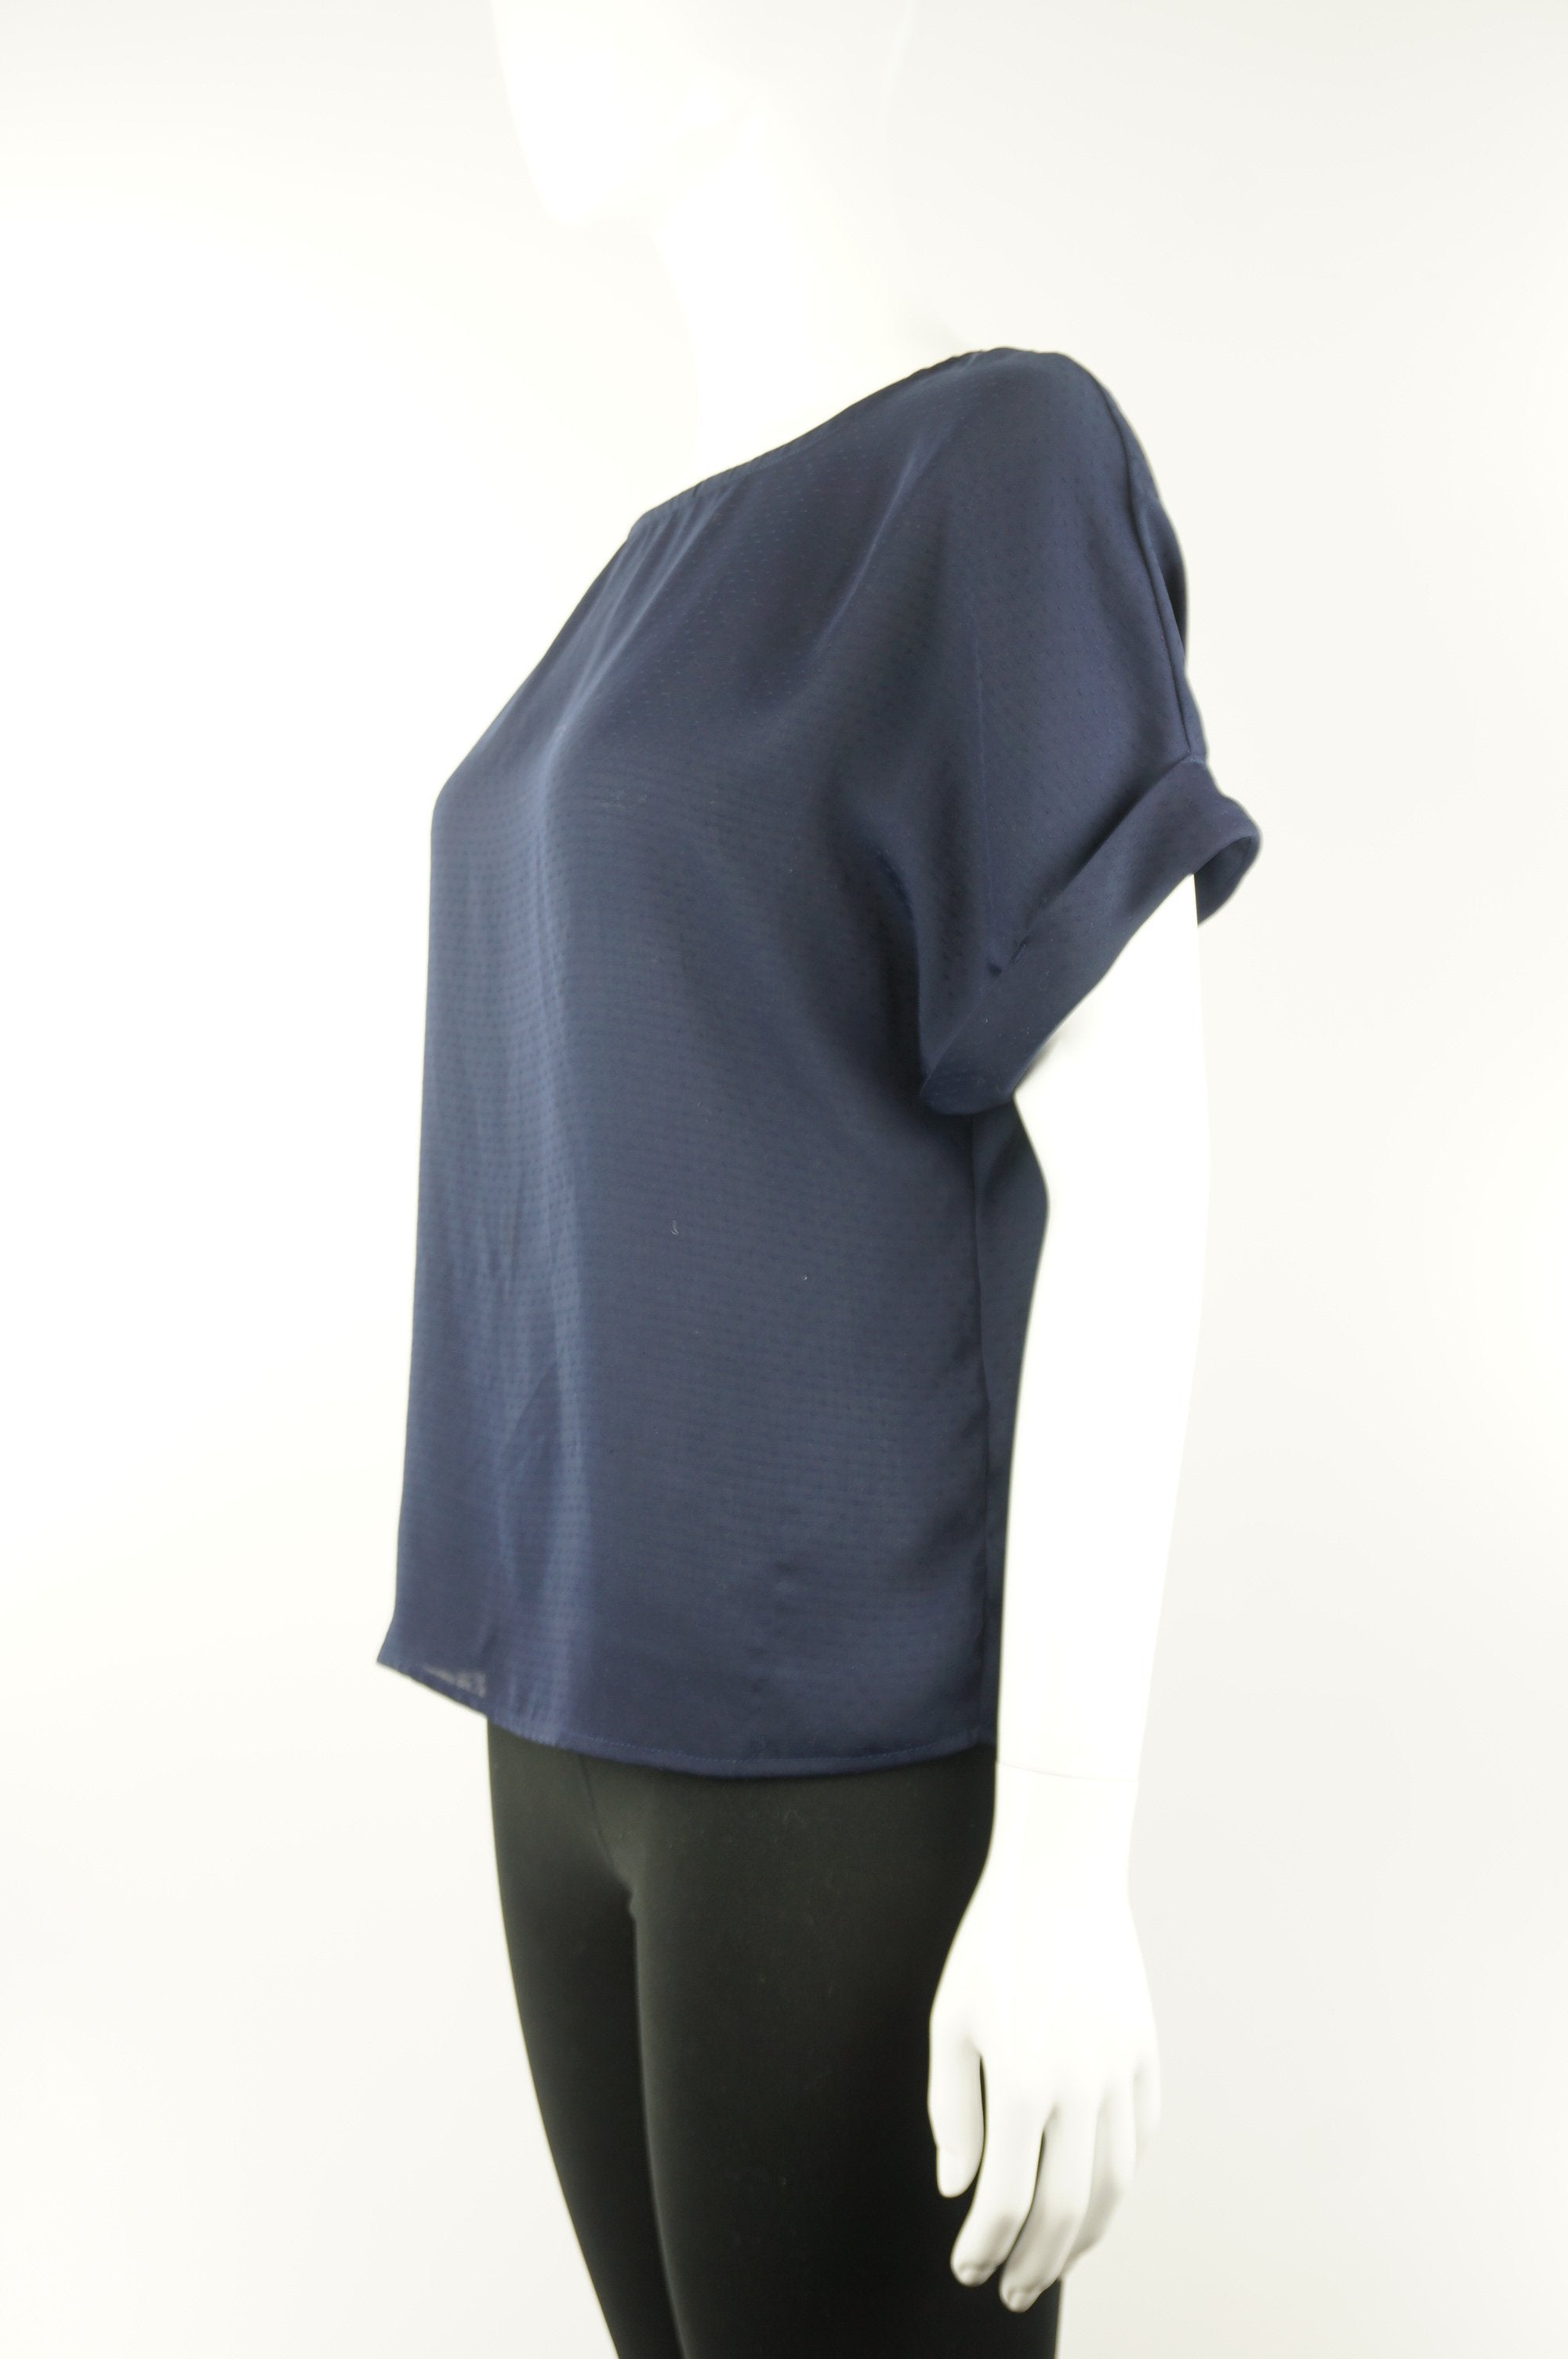 Dynamite Basic and comfy cuffed sleeve navy top, Add the casual and comfortable aspect to your work wardrobe with this cute cuffed sleeves shirt, Blue, 100% Polyester, women's Tops, women's Blue Tops, Dynamite women's Tops, dynamite dark blue top, women's simple top, women's shirt